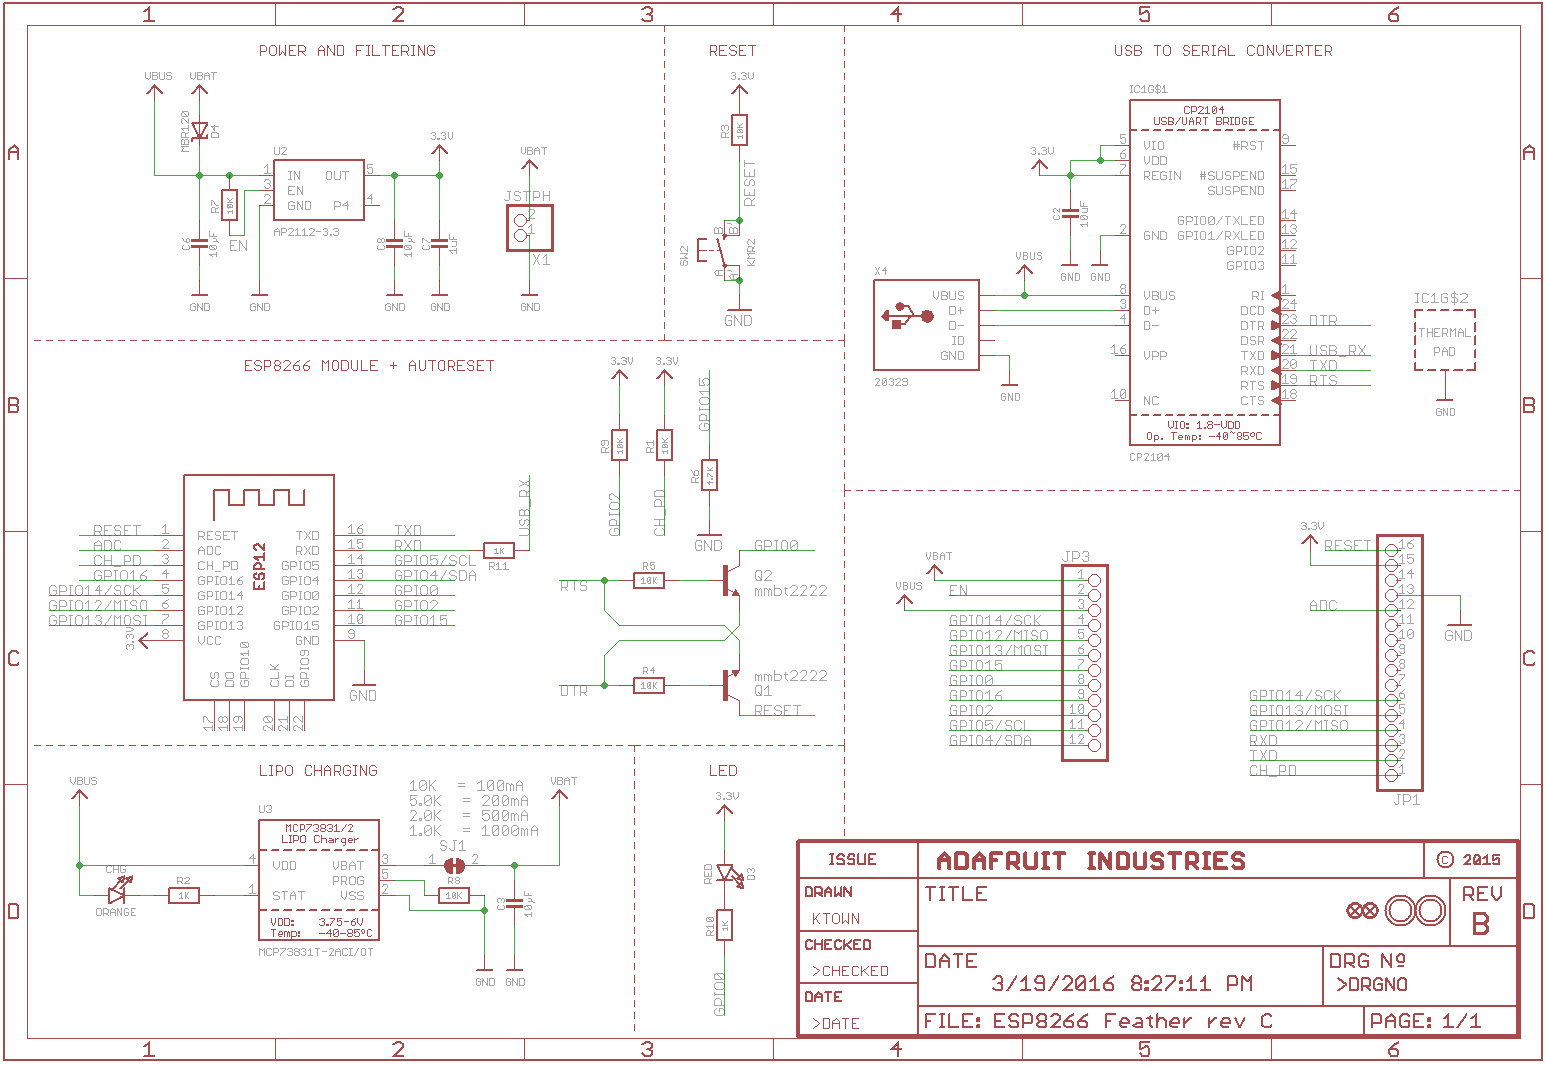 Schematic on circuit diagram, straight-line diagram, data flow diagram, ladder logic, control flow diagram, function block diagram, technical drawing, functional flow block diagram, tube map, piping and instrumentation diagram, electronic design automation, diagramming software, schematic capture, one-line diagram, cross section, block diagram,